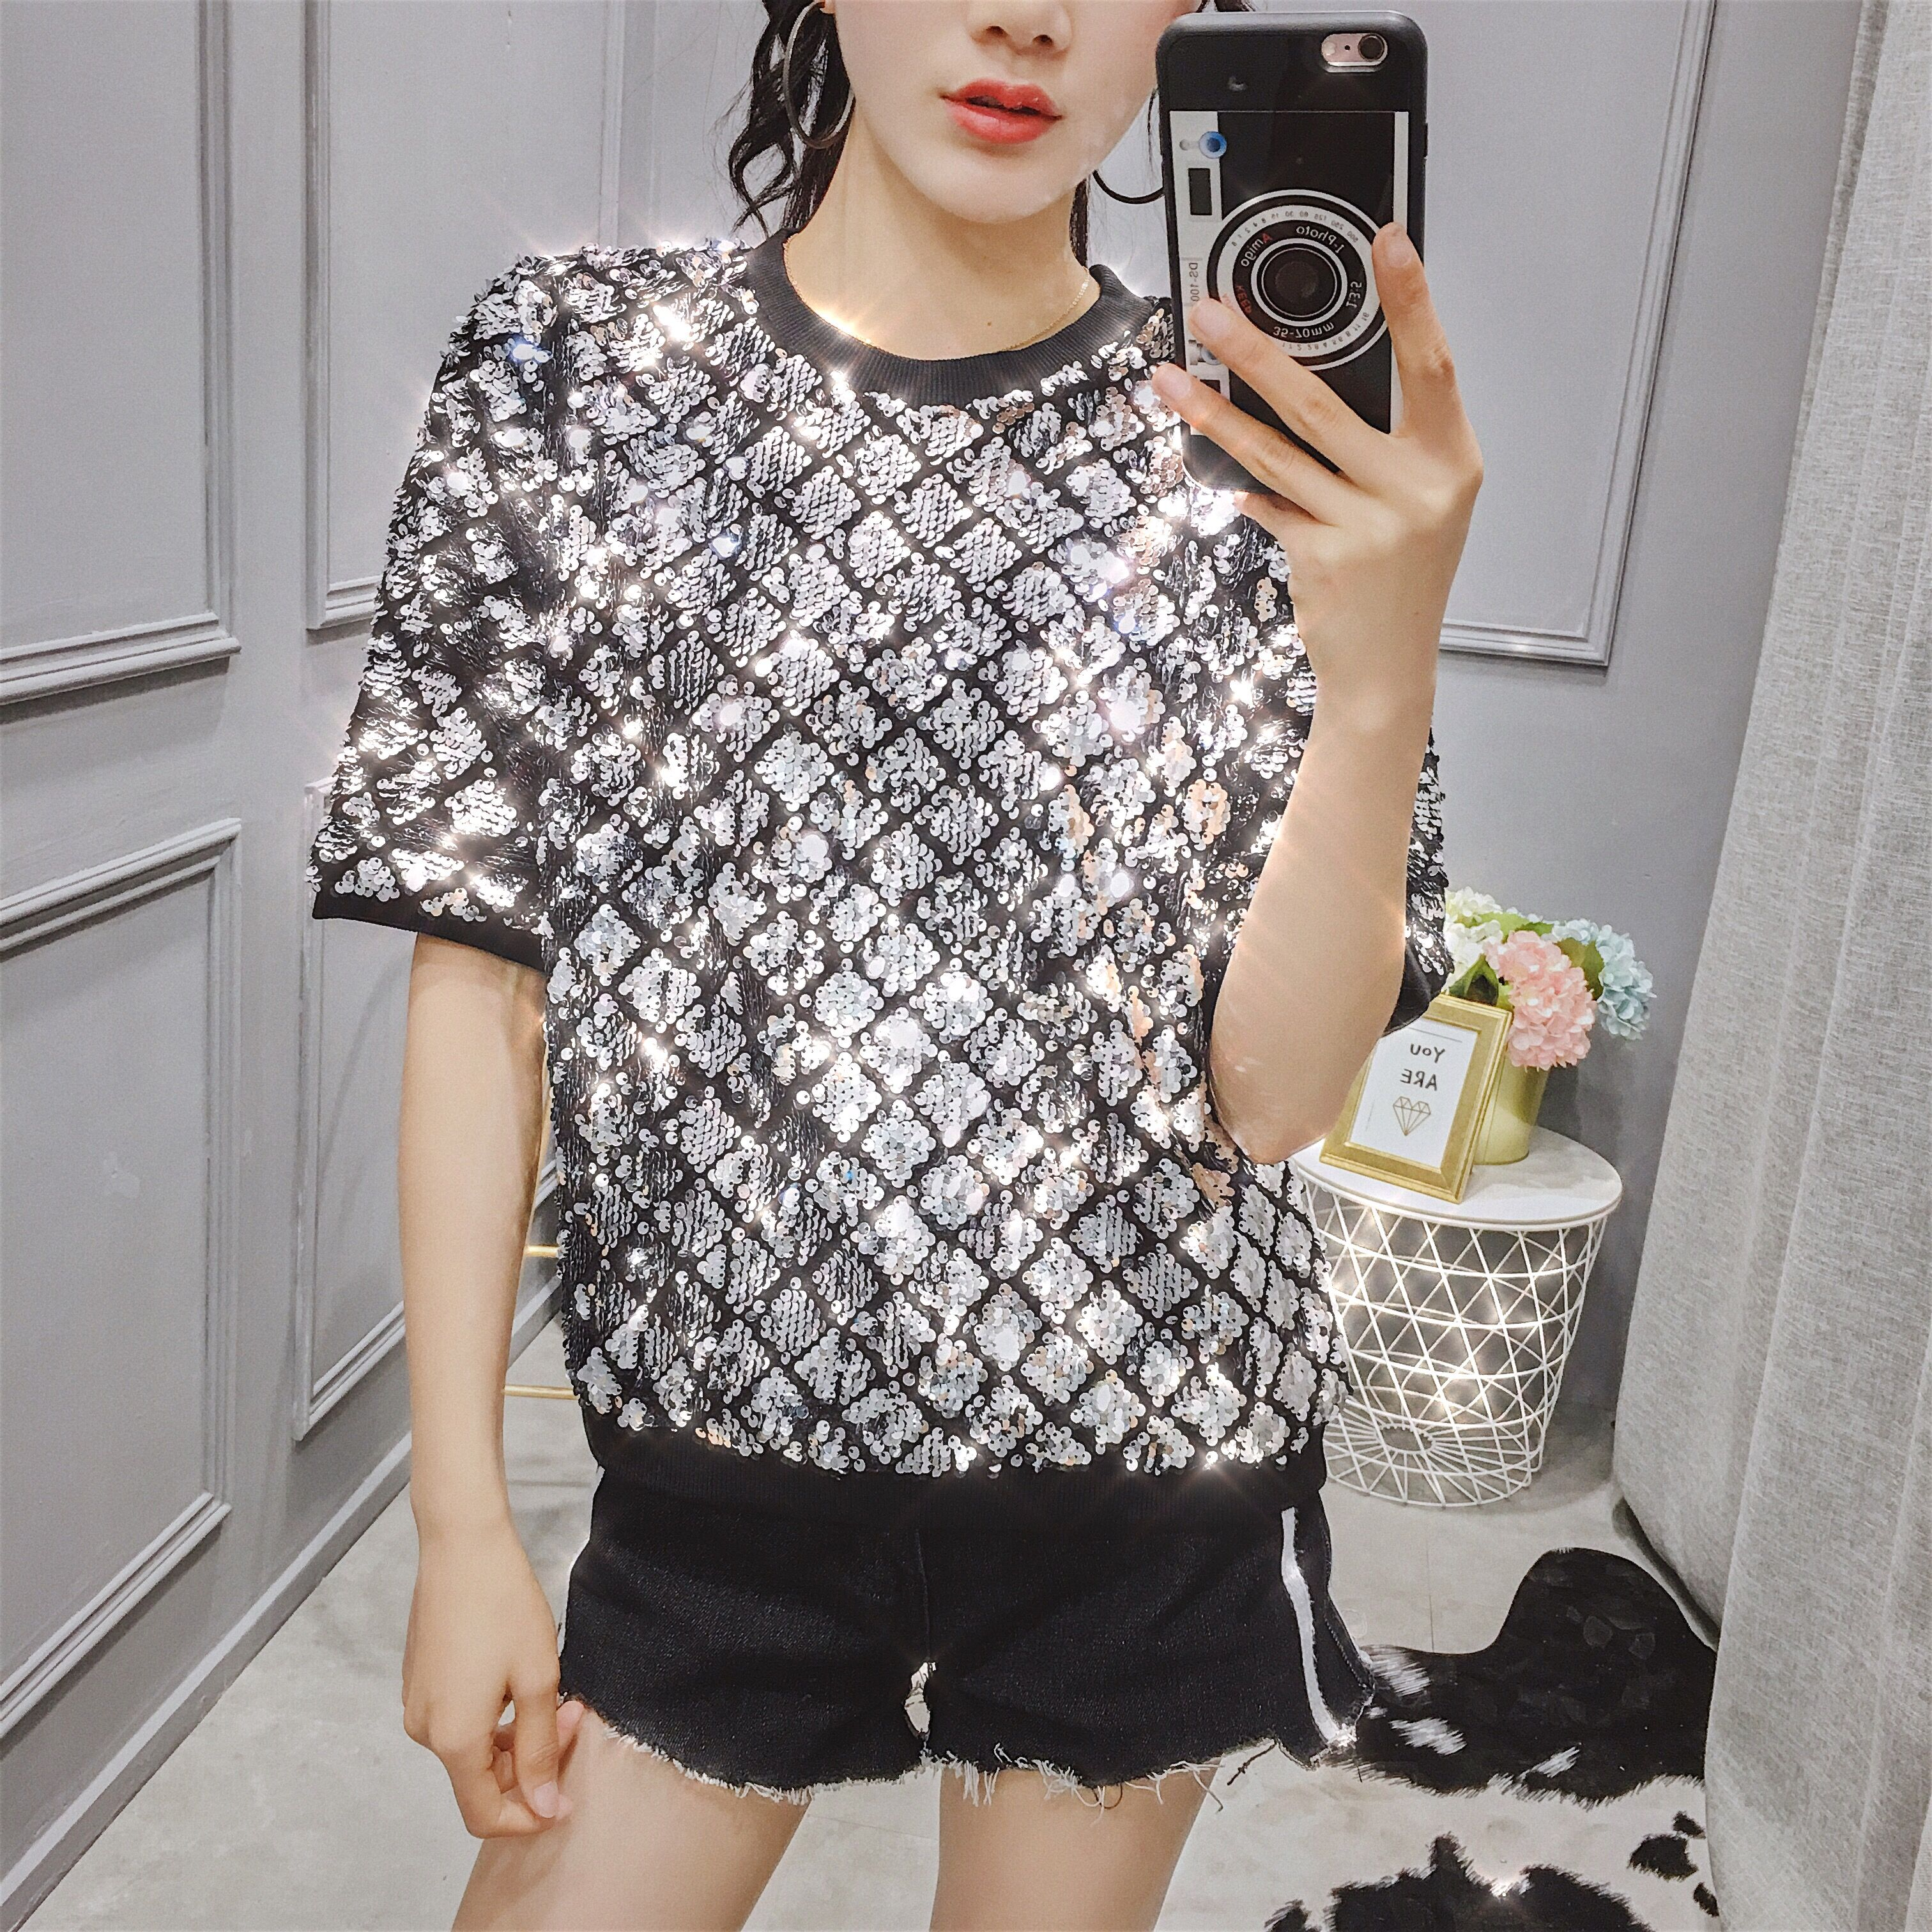 European station 2019 spring and summer round neck five-point short-sleeved sequins loose small shirt fashion t-shirt